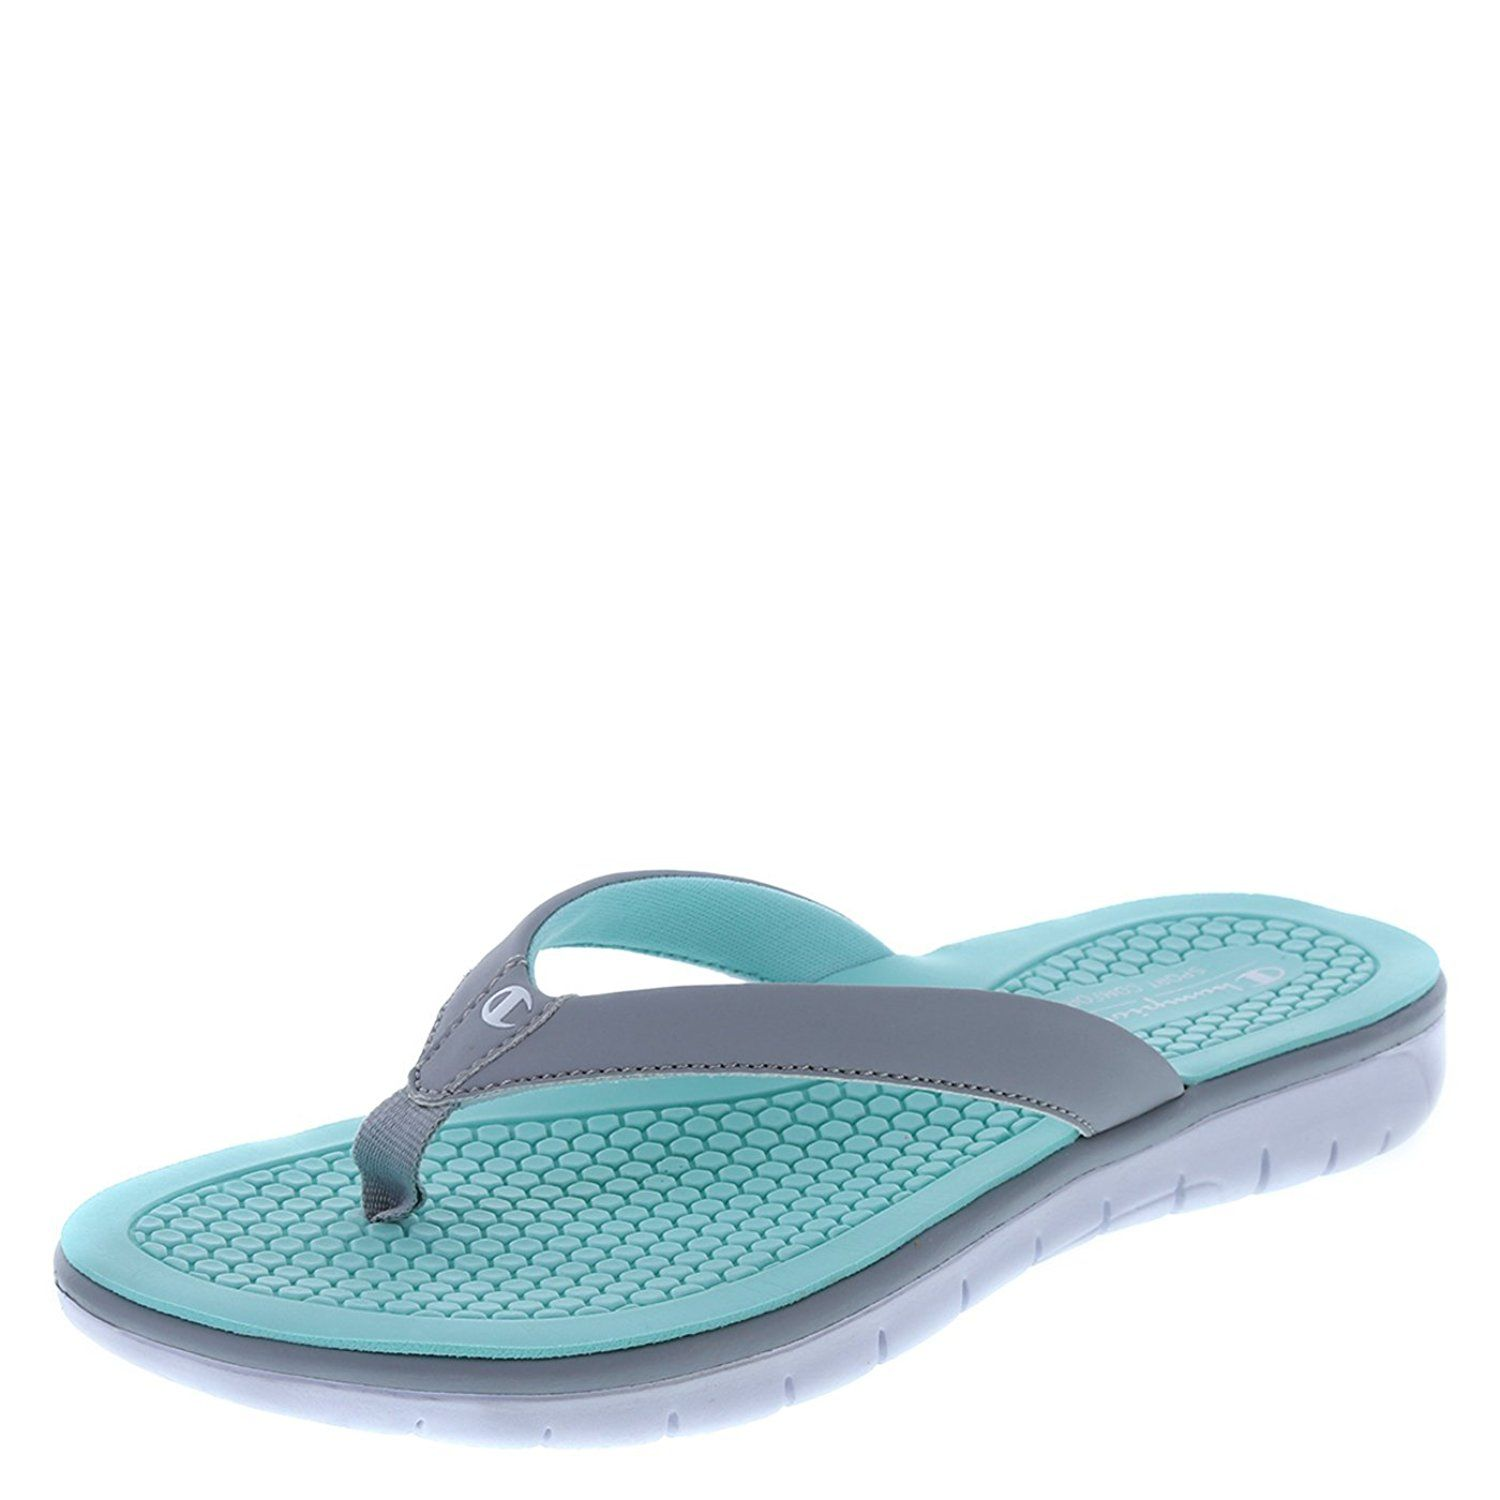 5176f91b93f81 Champion Women s Gusto Flip Flop     Insider s special review you can t  miss. Read more - Outdoor sandals